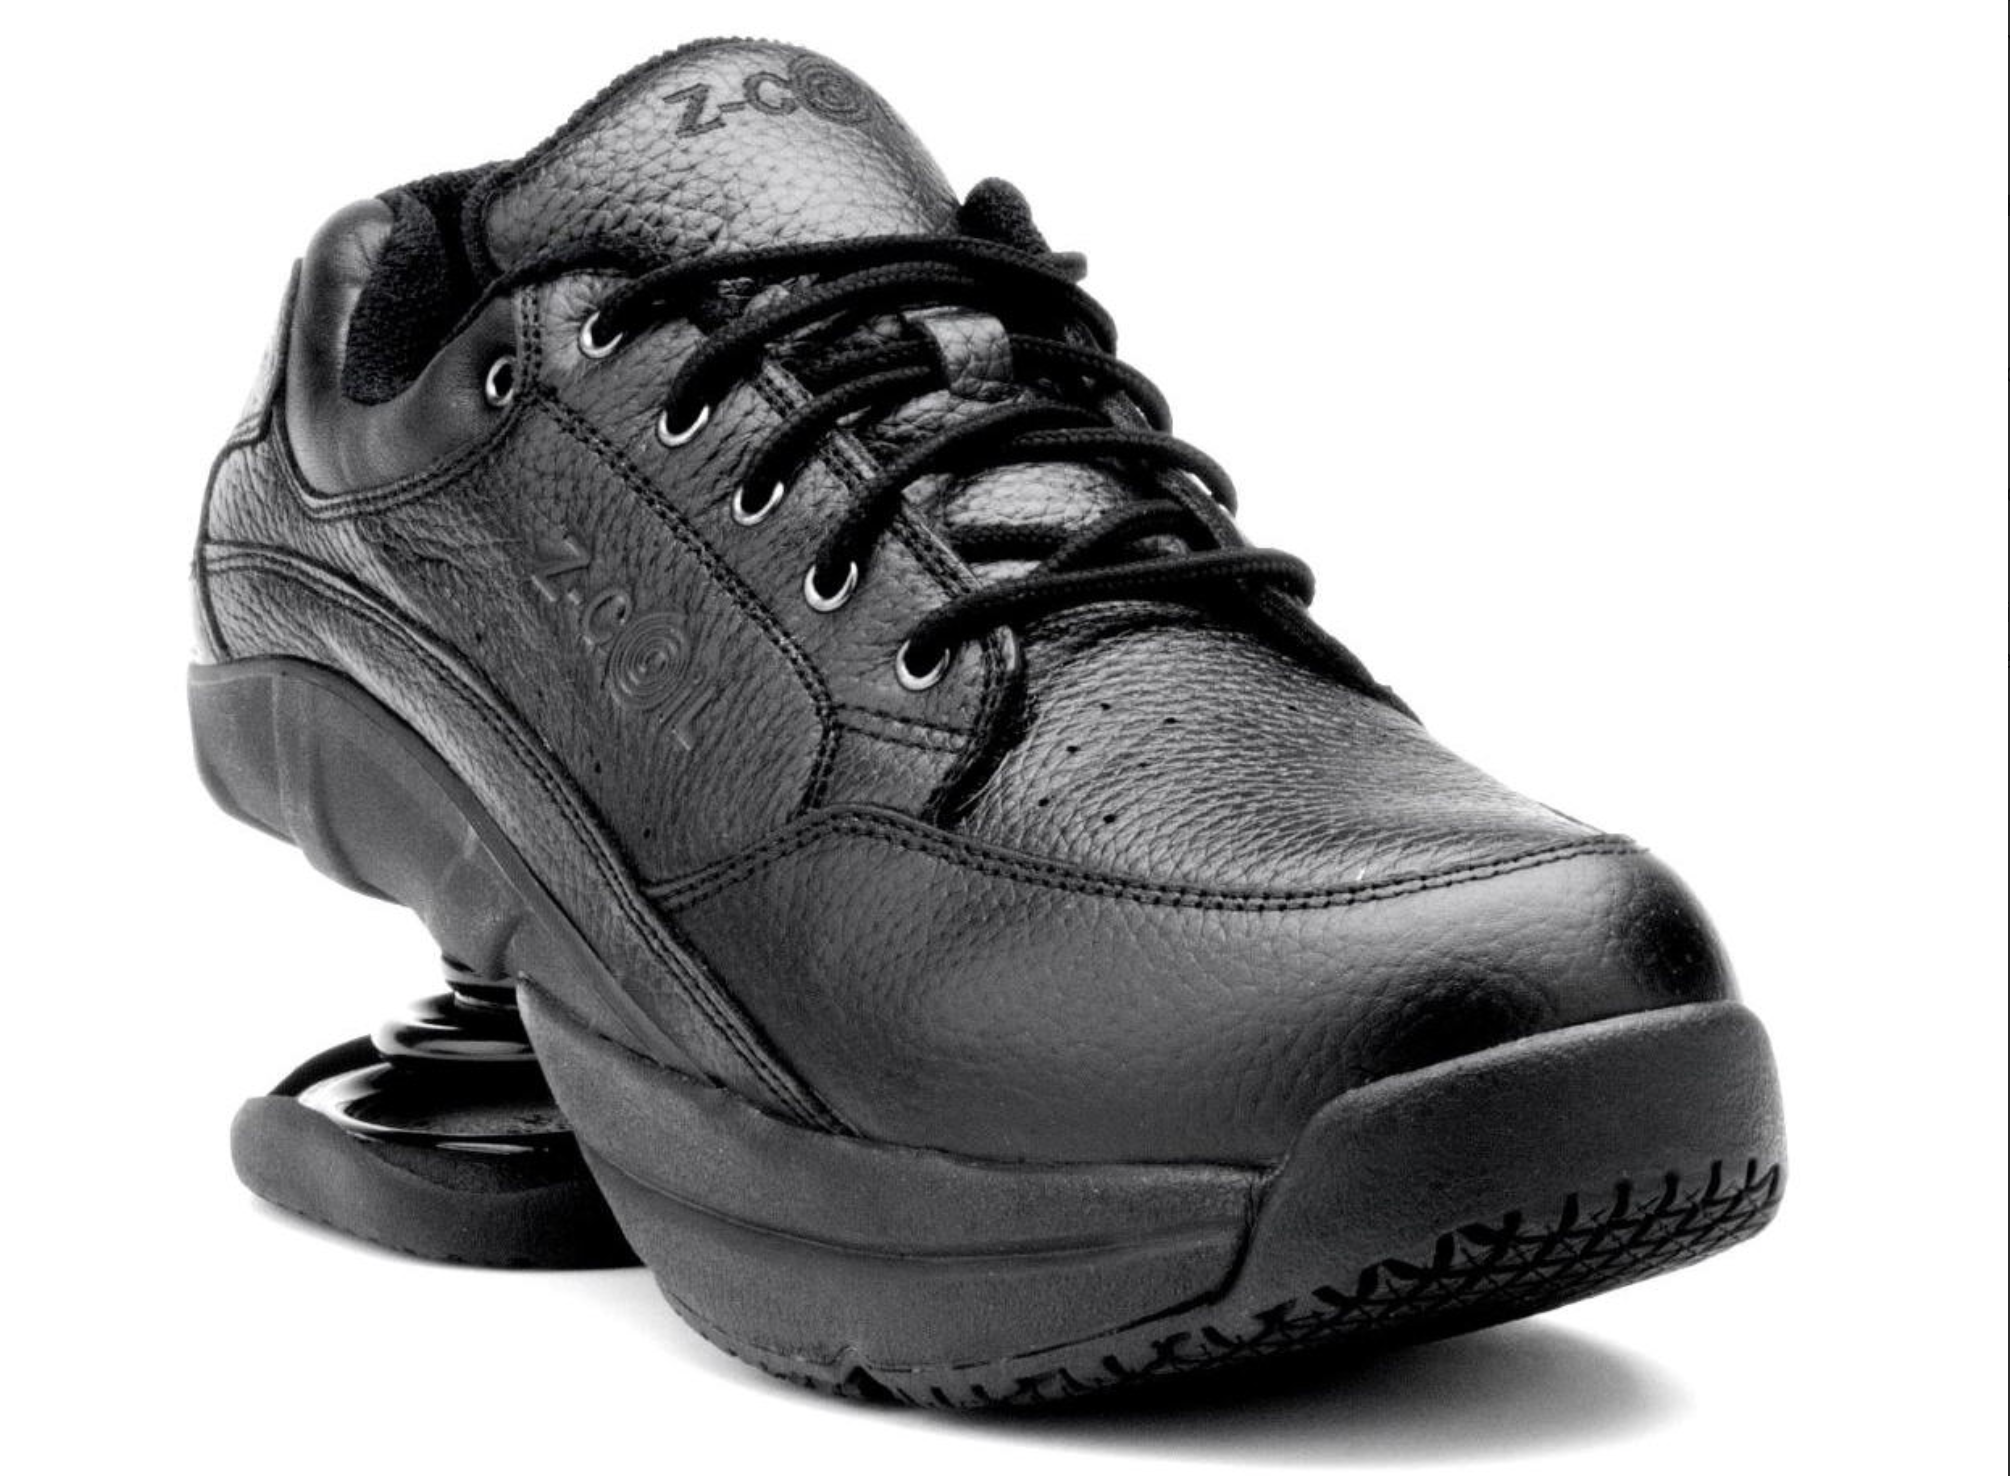 River Valley Comfort Shoes, LLC image 8